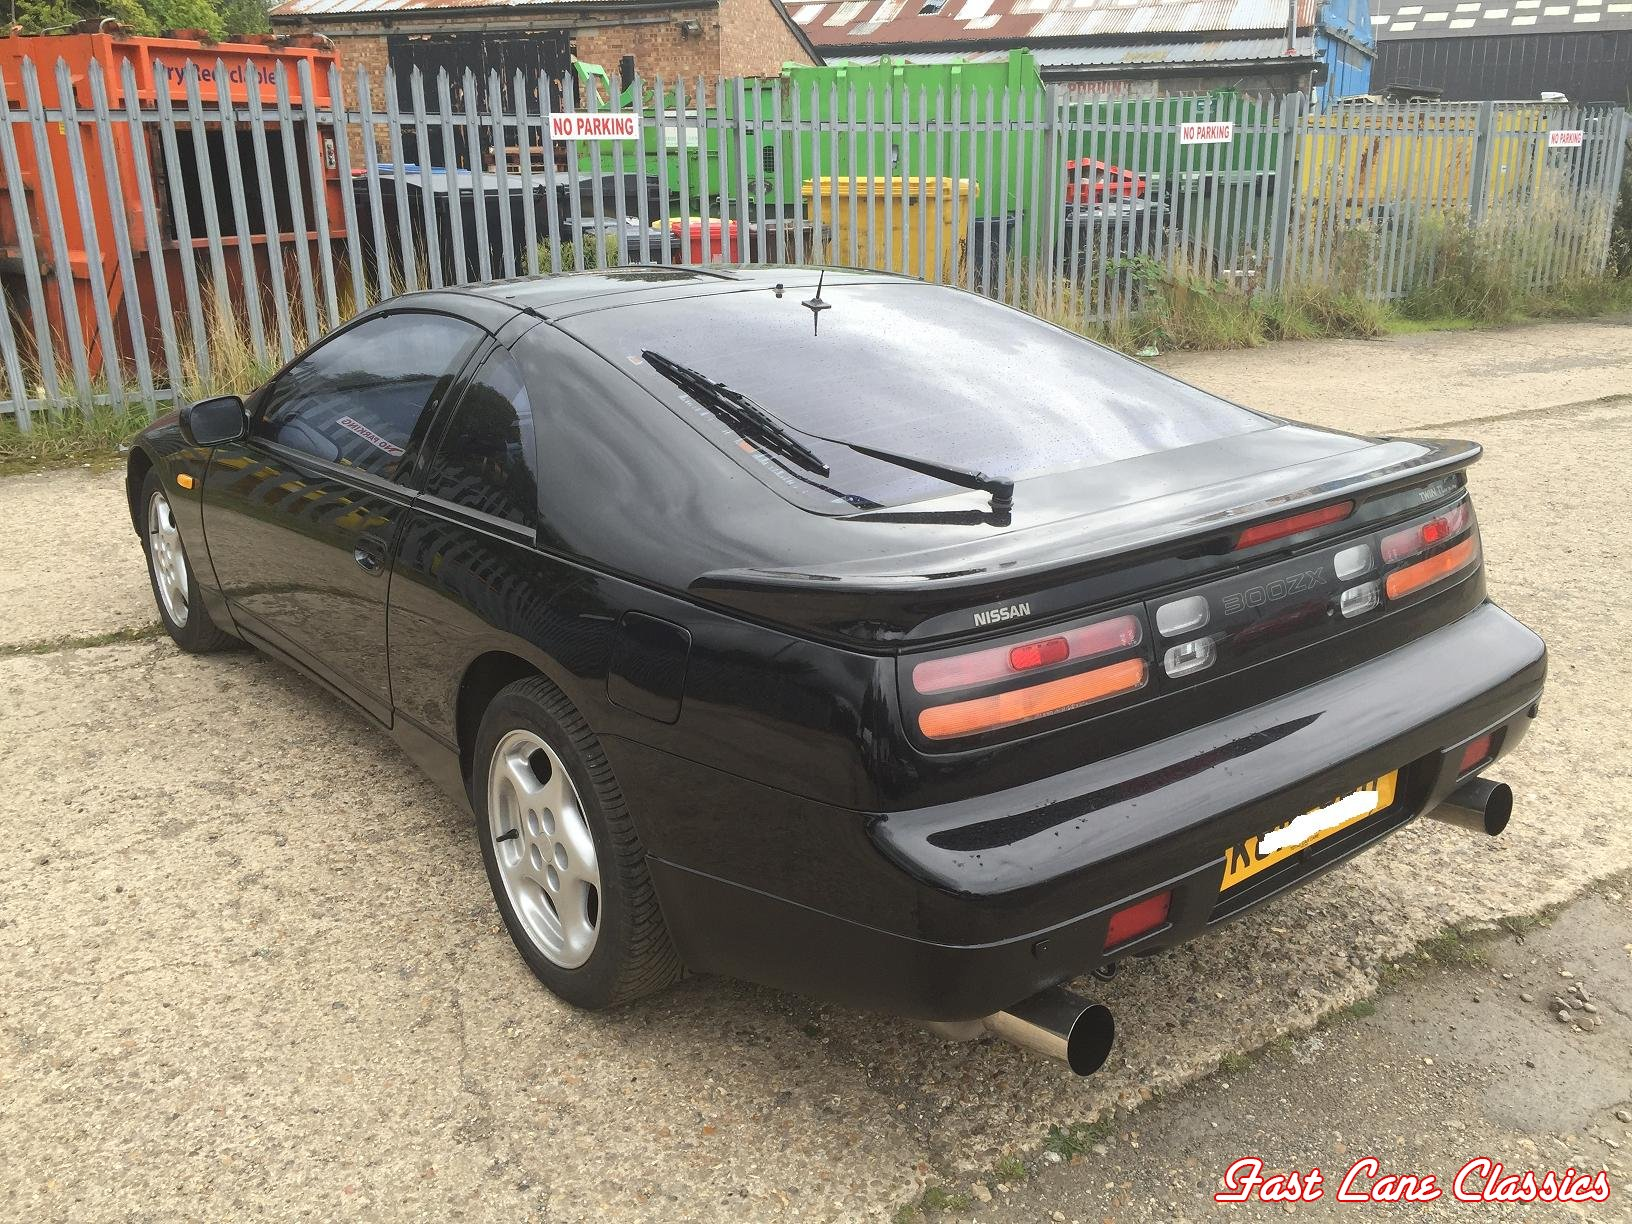 1992 nissan 300zx twin turbo coupe for sale by fast lane classics fast lane classics. Black Bedroom Furniture Sets. Home Design Ideas